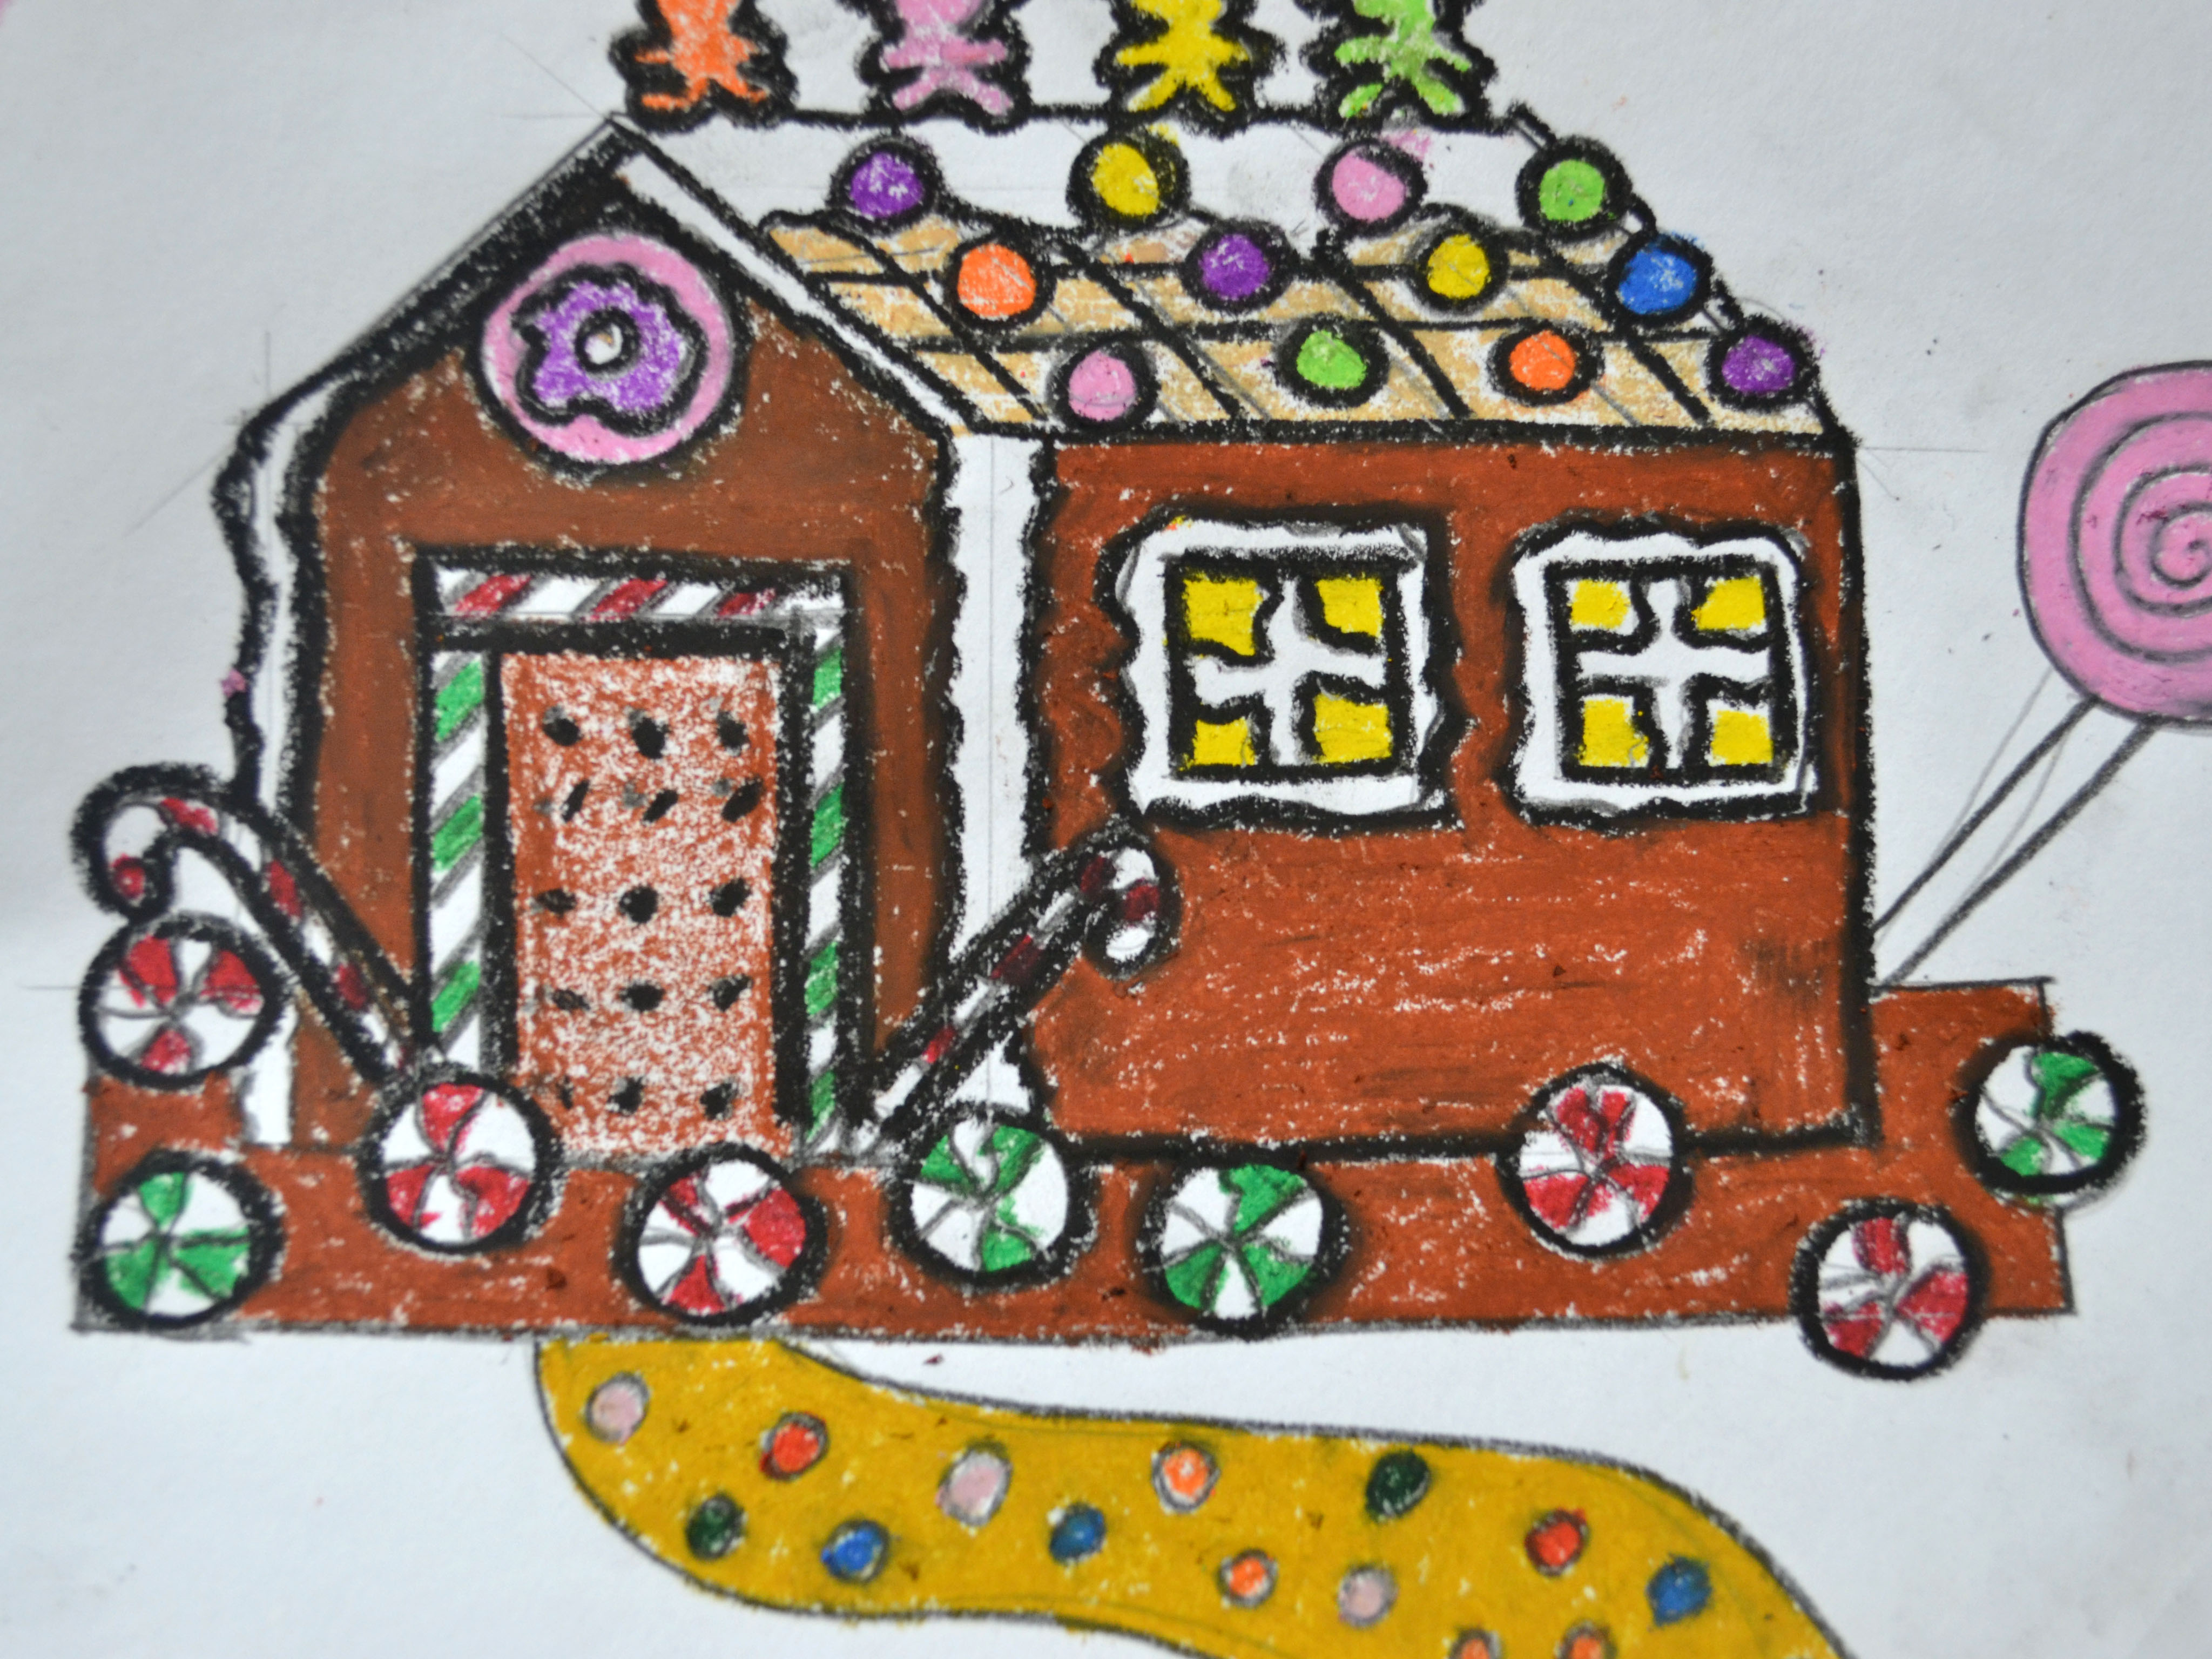 4096x3072 How To Draw A Gingerbread House (With Pictures)